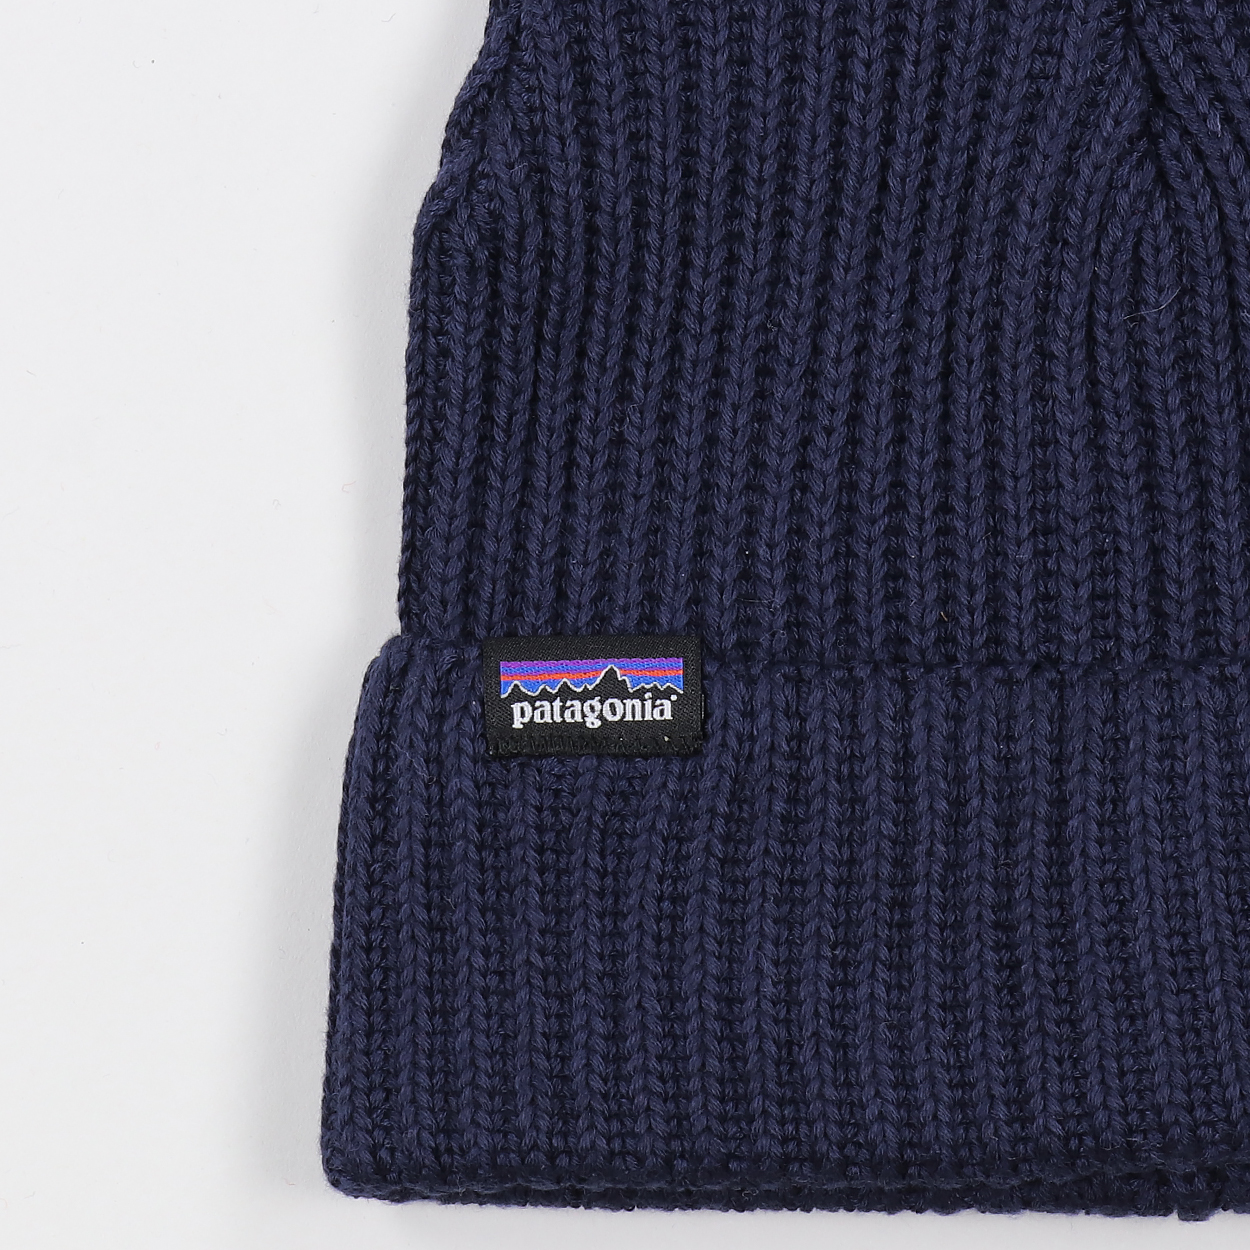 eca5c14c Patagonia's standard cuffed and rolled beanie hat with their iconic P-6  logo tab. Super soft, ribbed and comfortable for all-day-all-night cold  conditions.